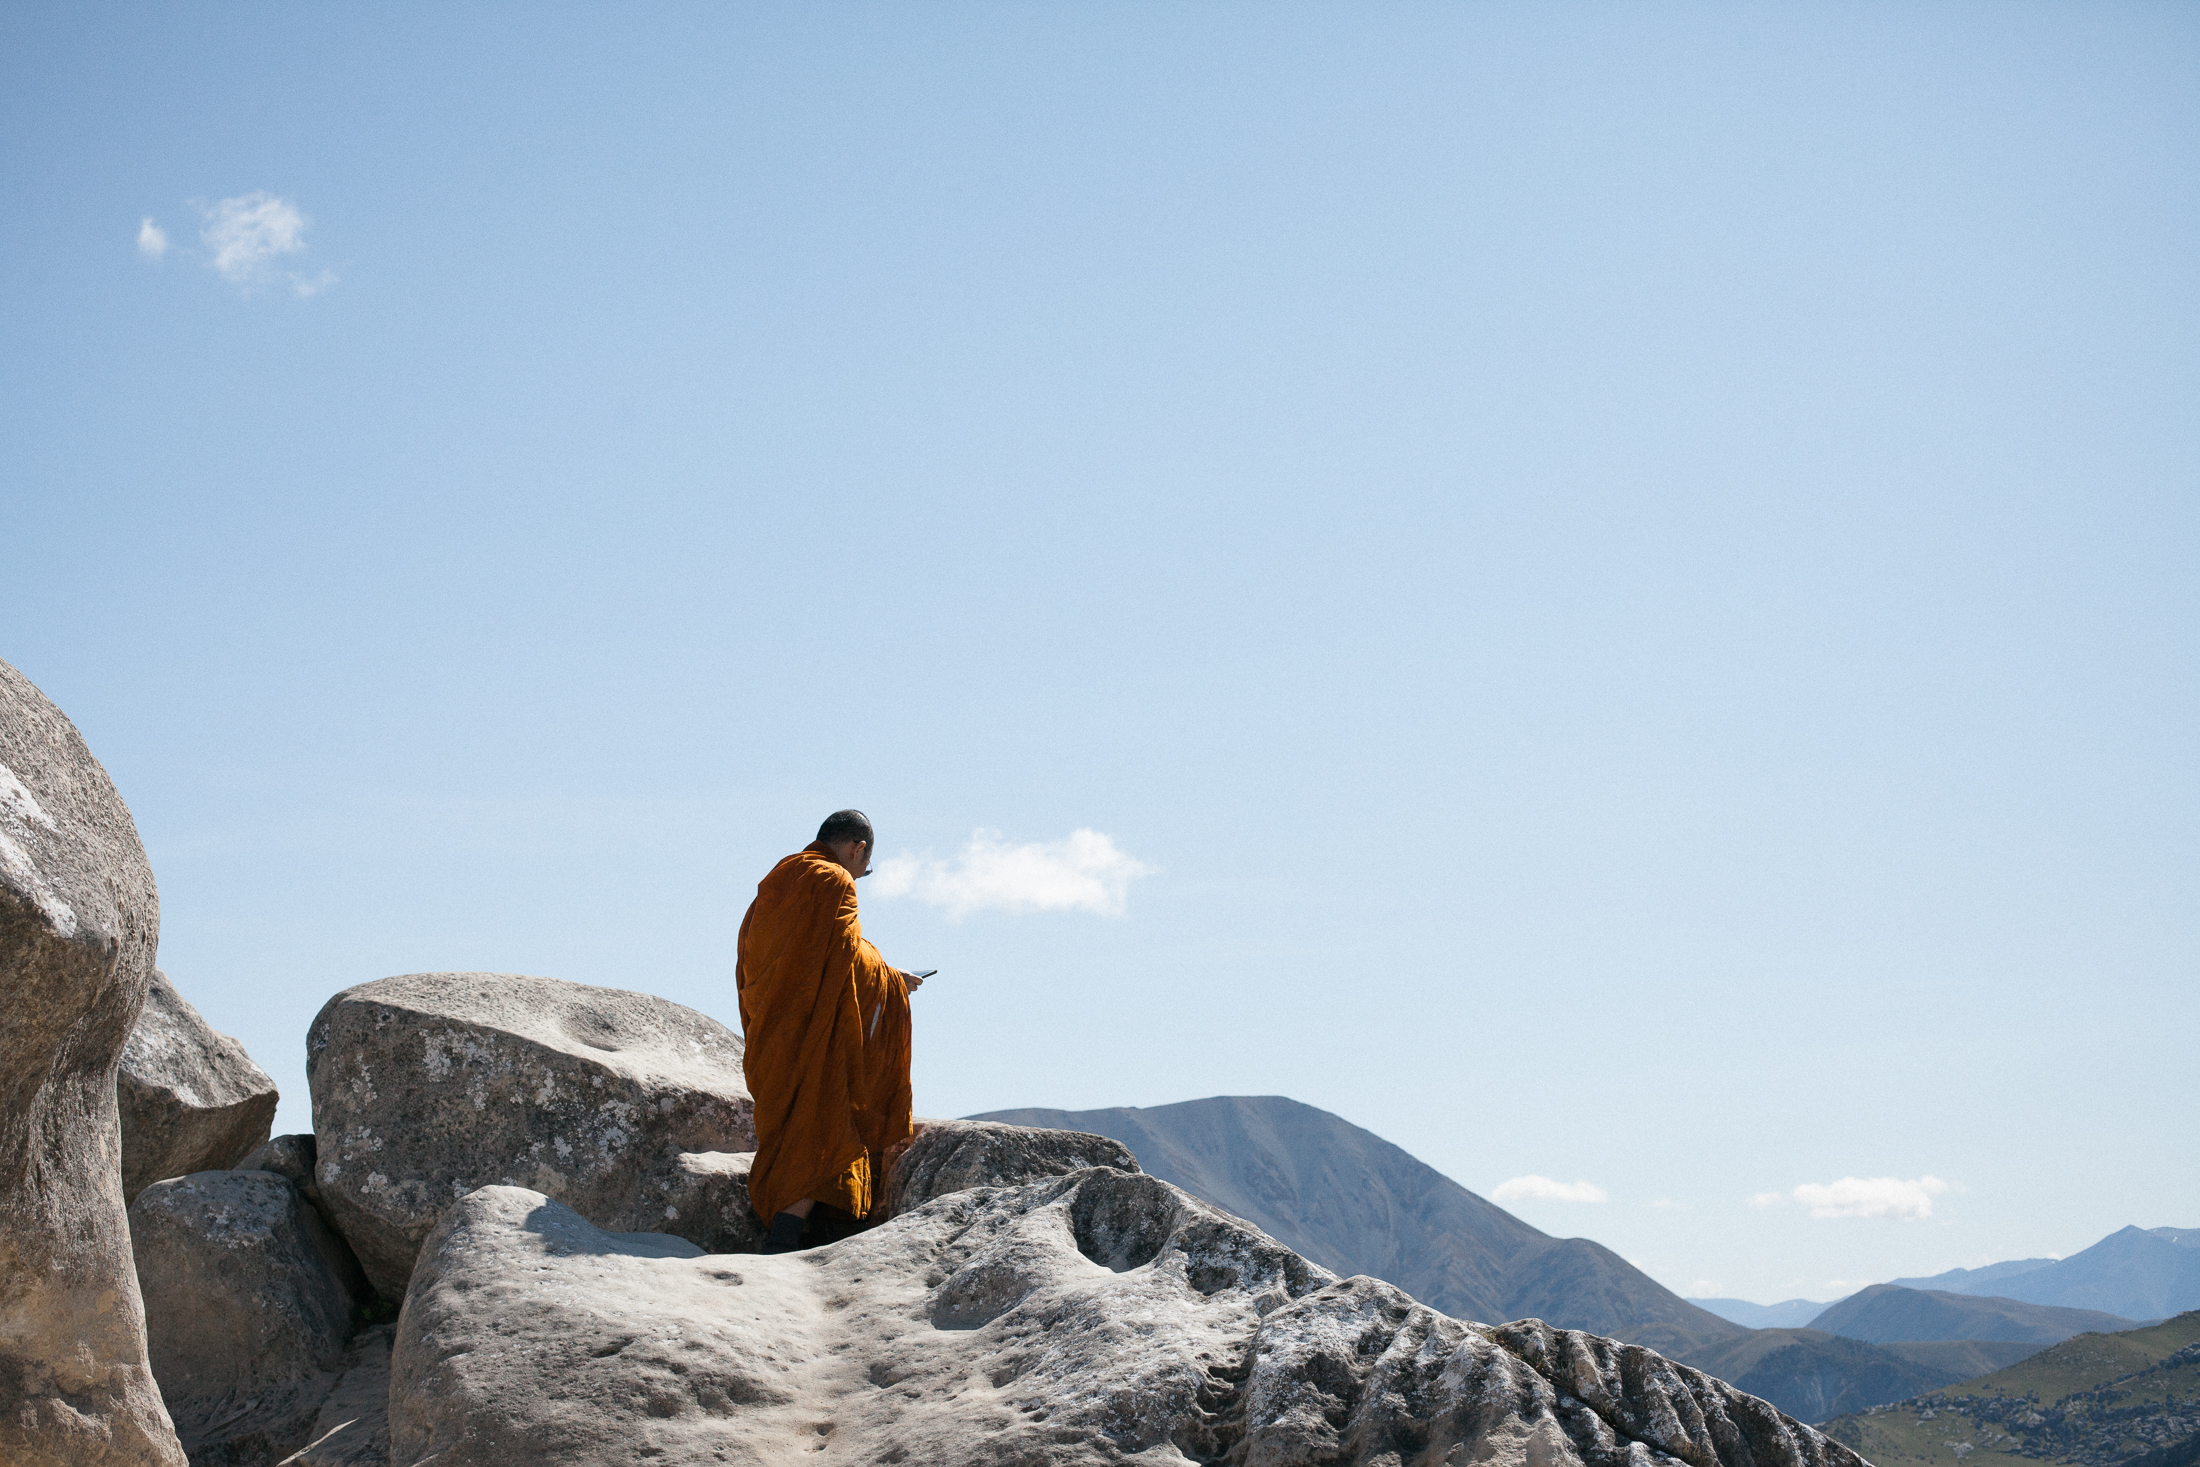 monk with an ipad on castle hill. copyright leonie wise